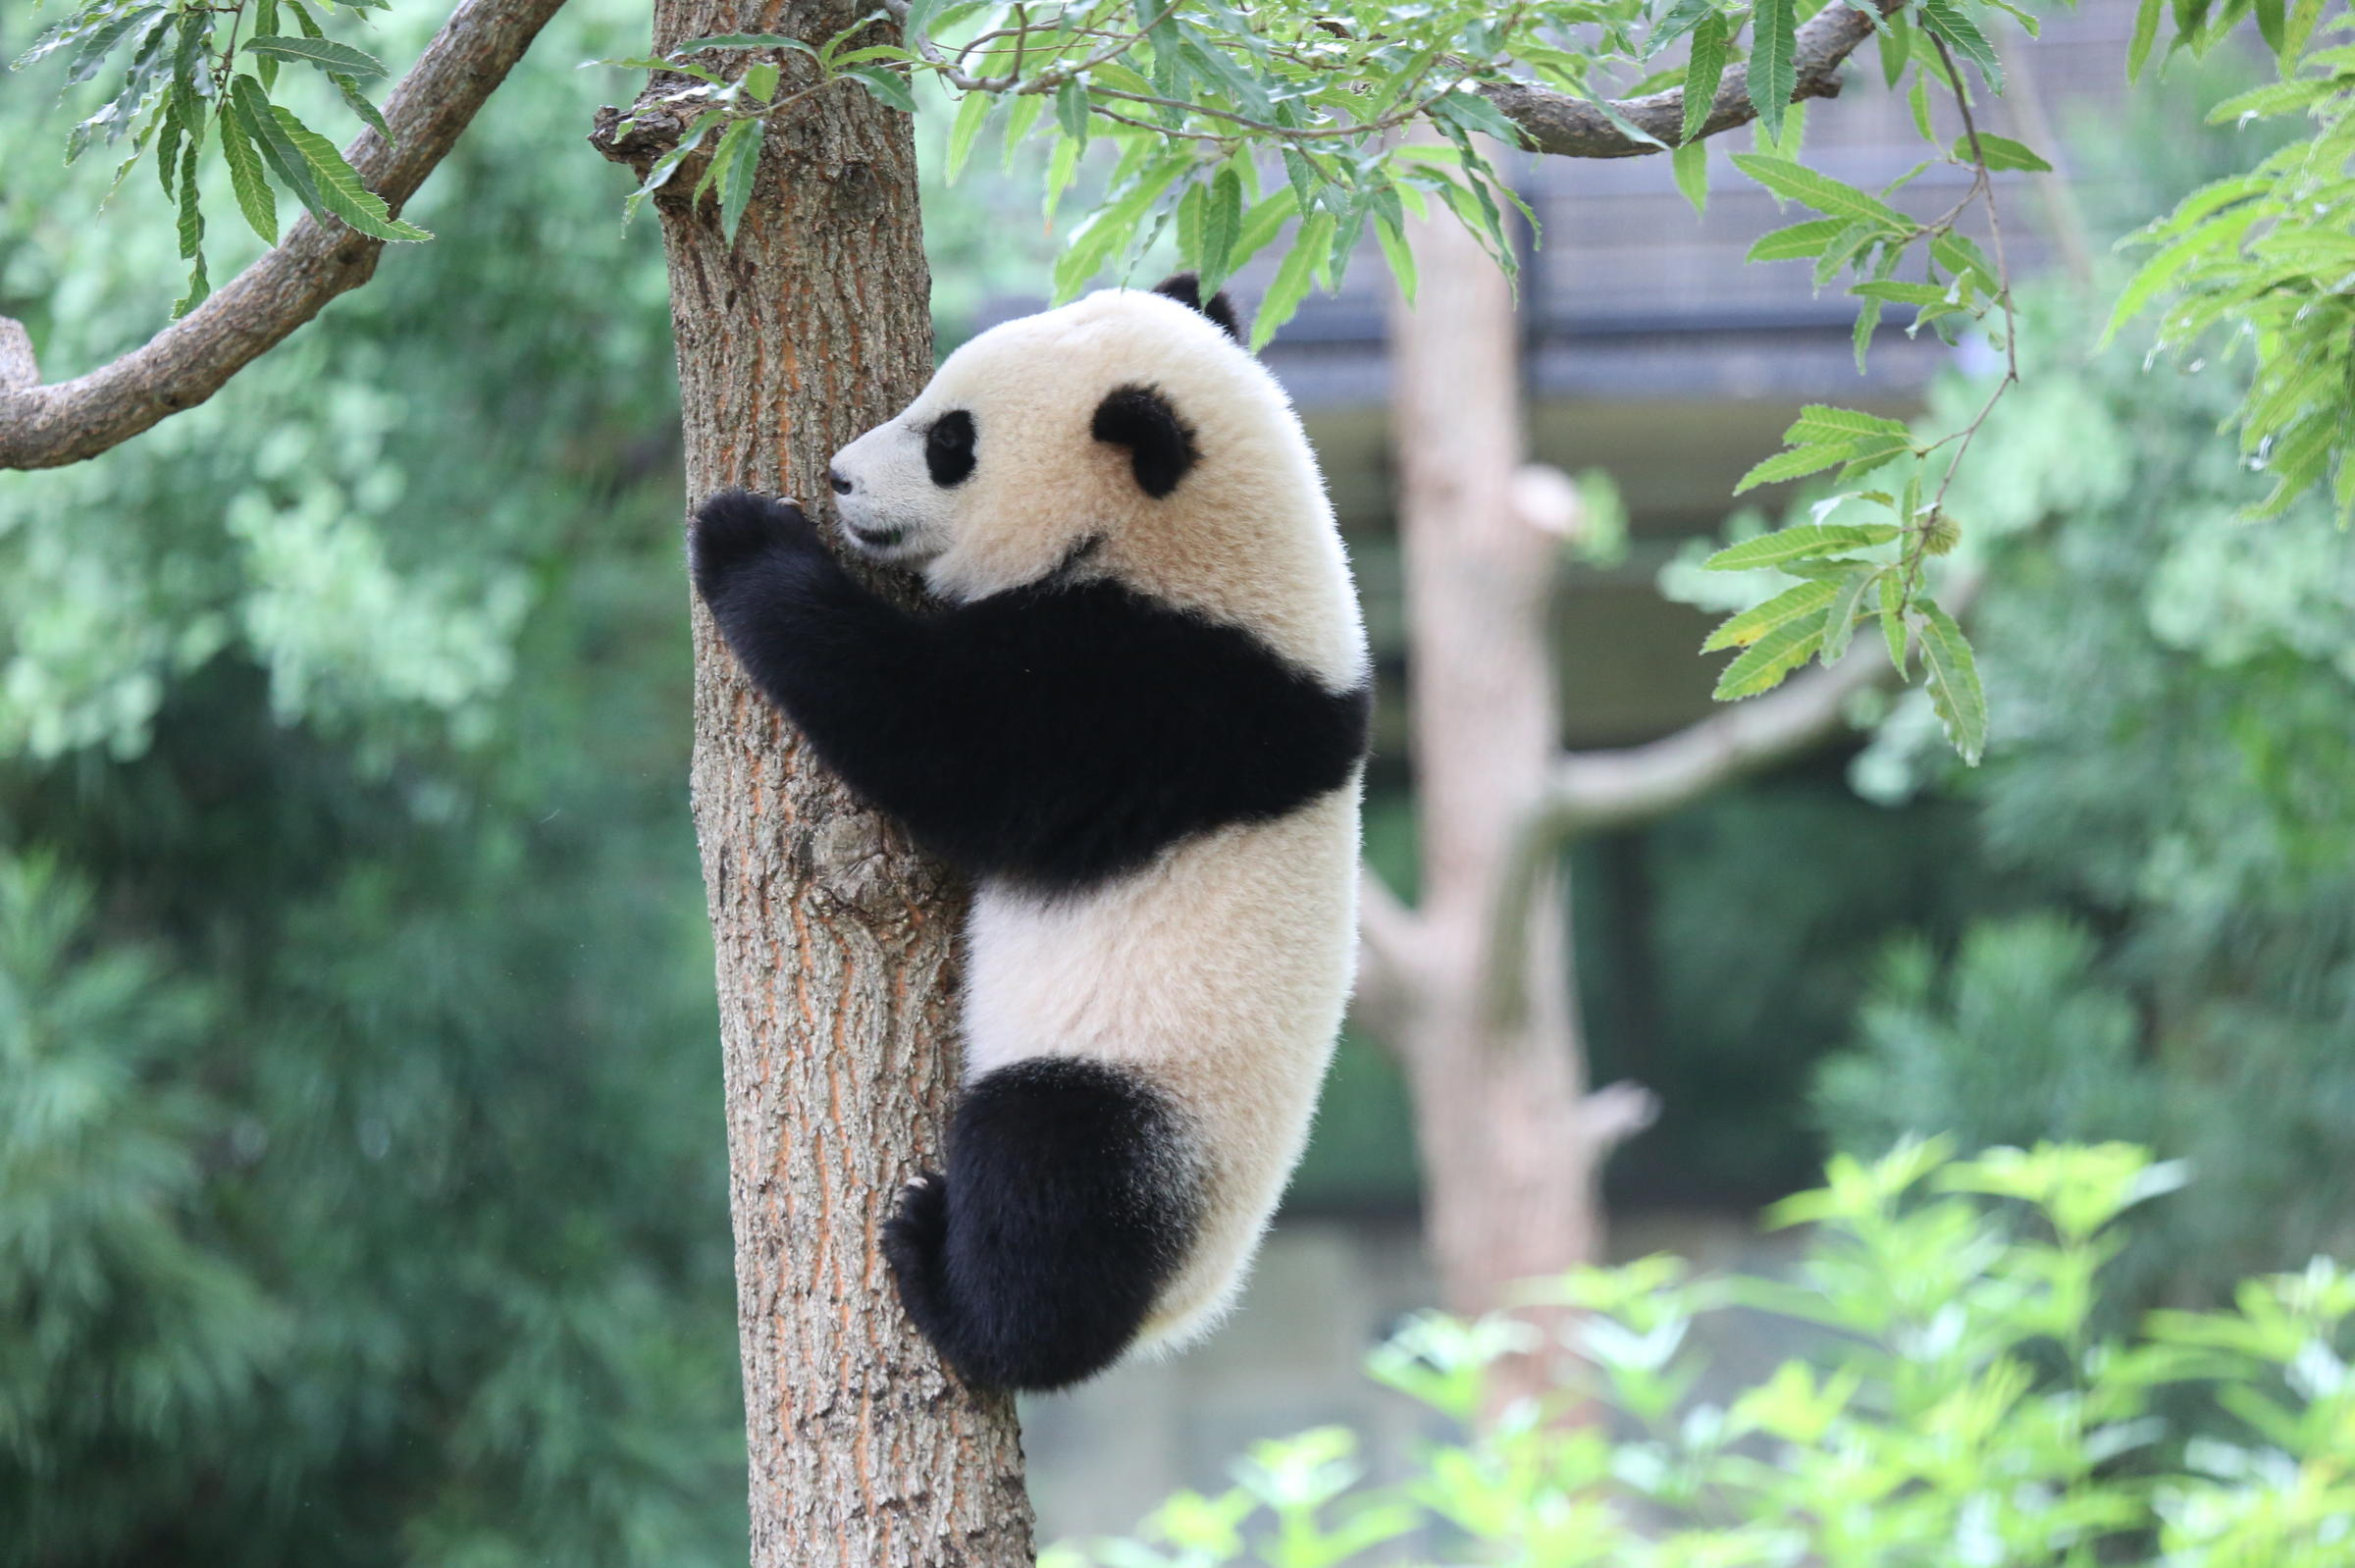 Bye-Bye, Bao Bao: Popular Giant Panda Heads To China This ...